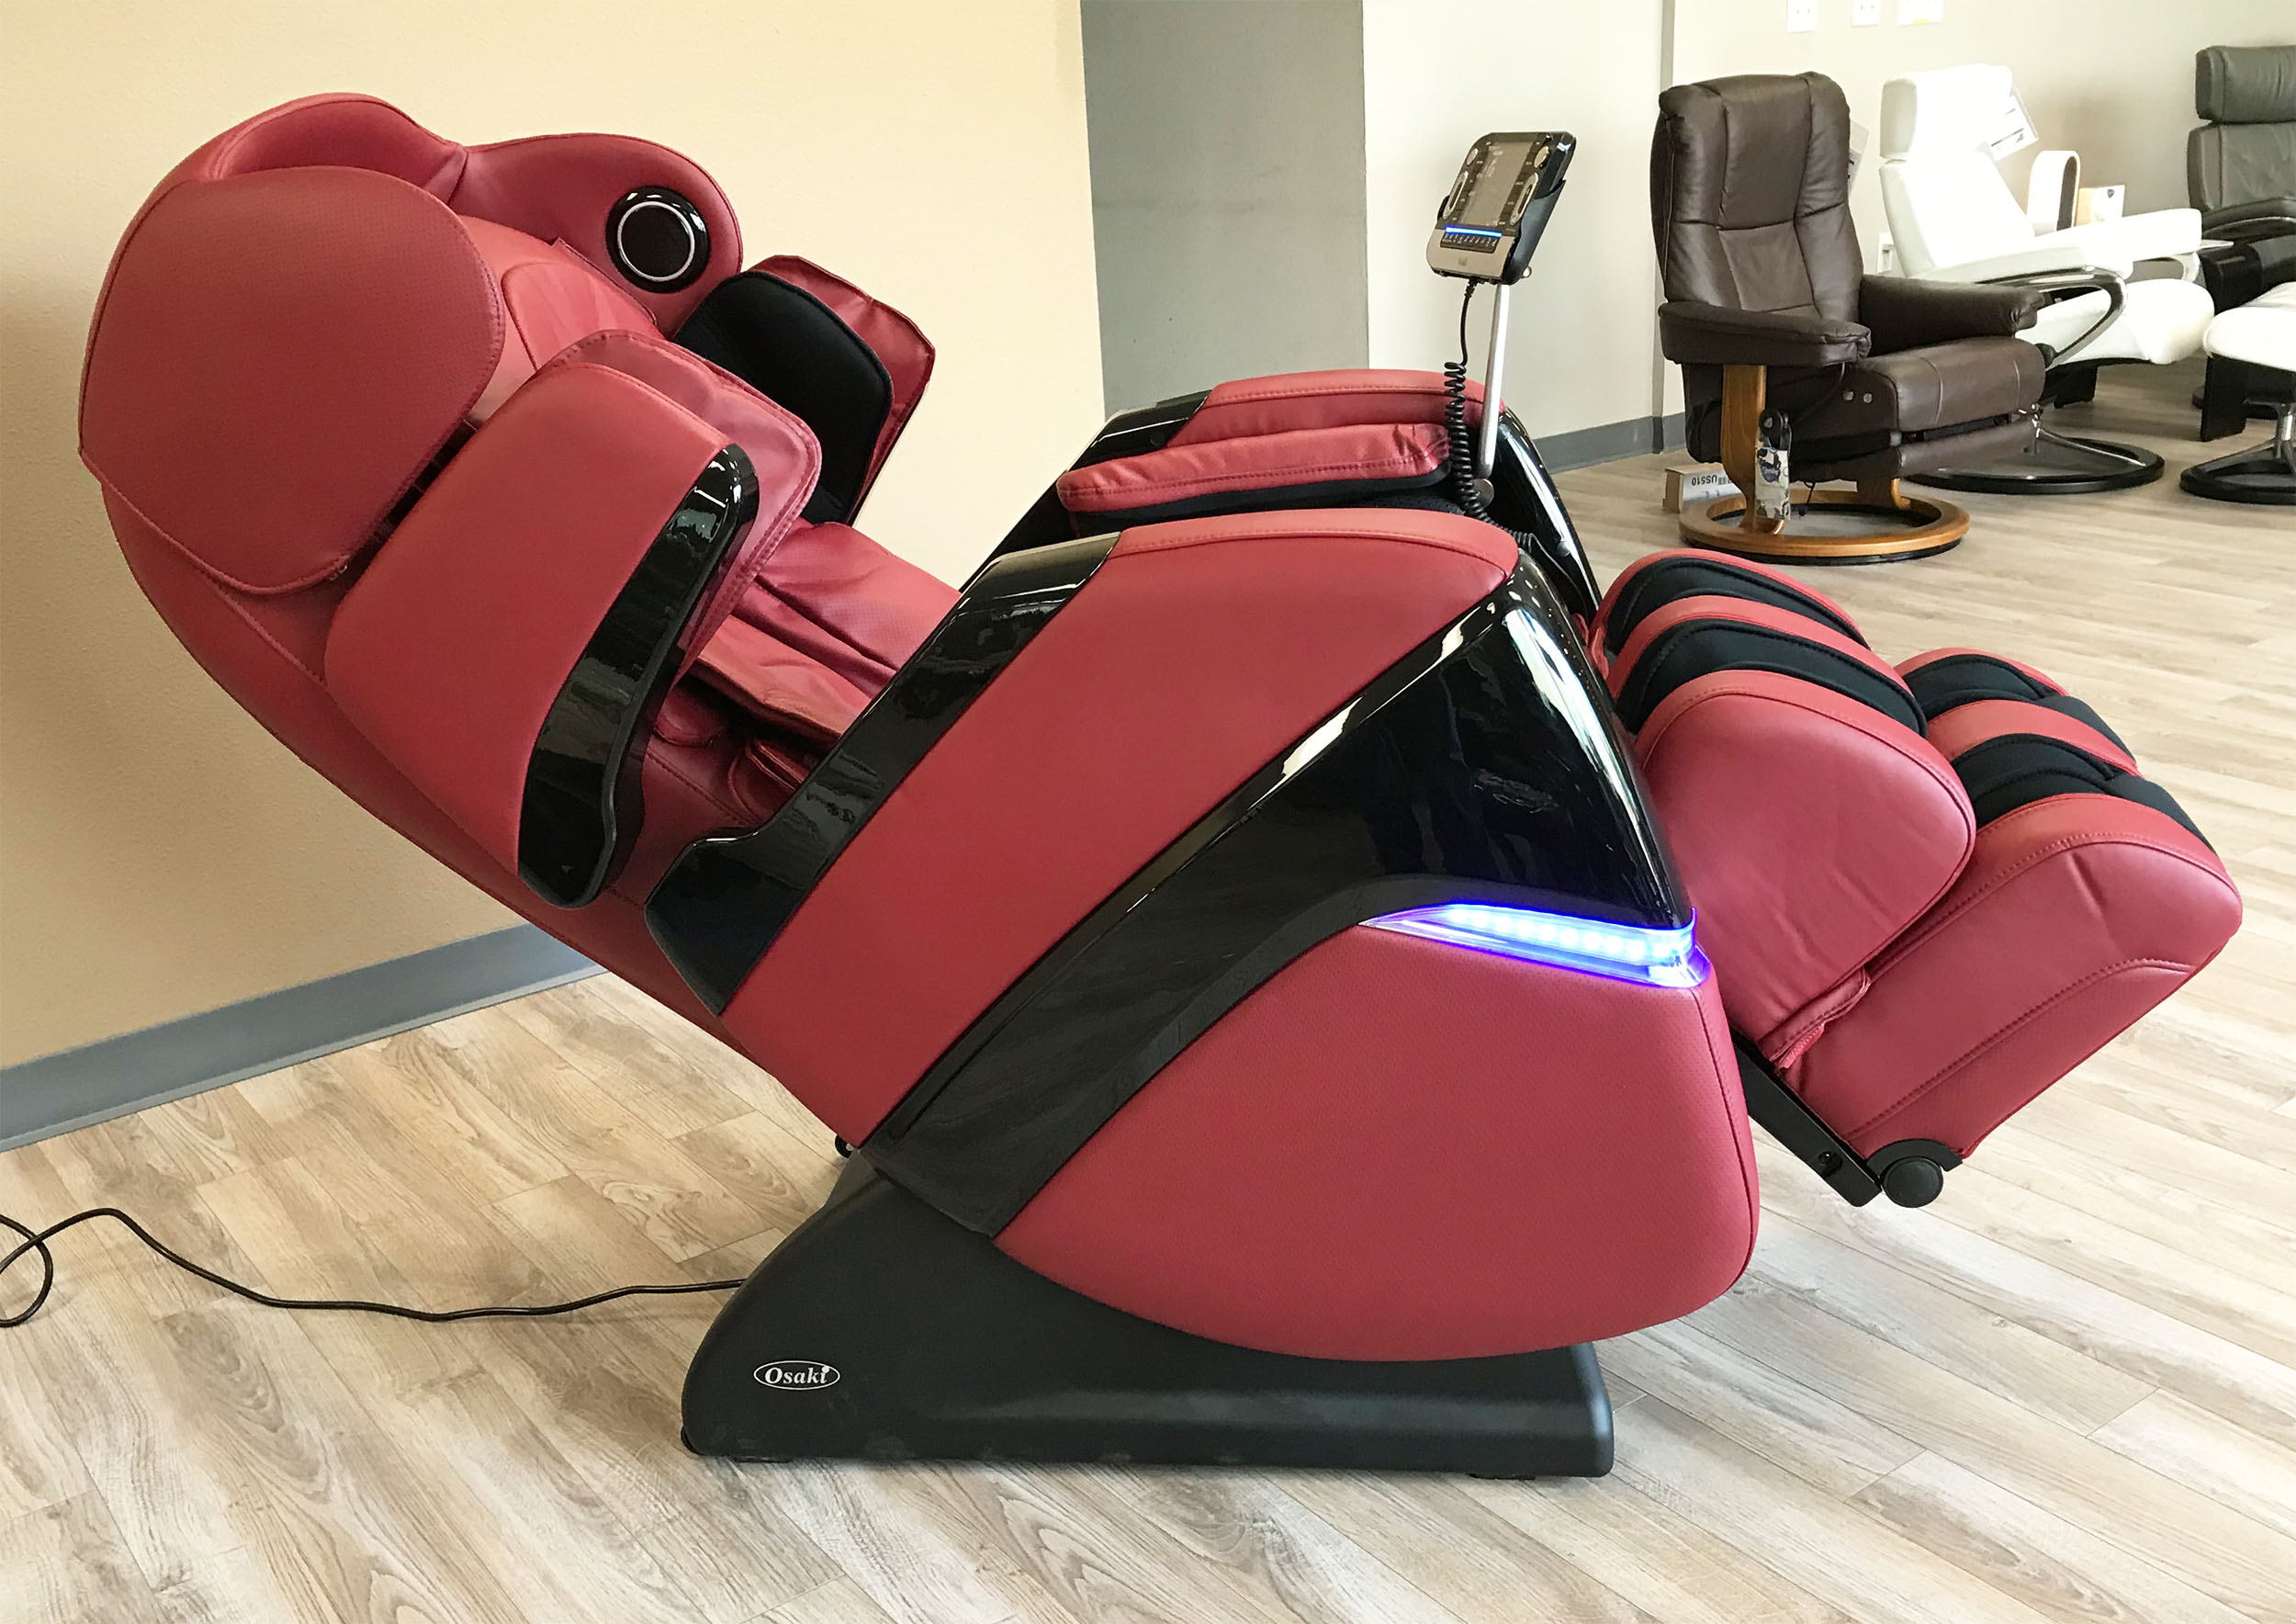 osaki os 3d pro cyber massage chair grosfillex resin chairs zero gravity recliner and